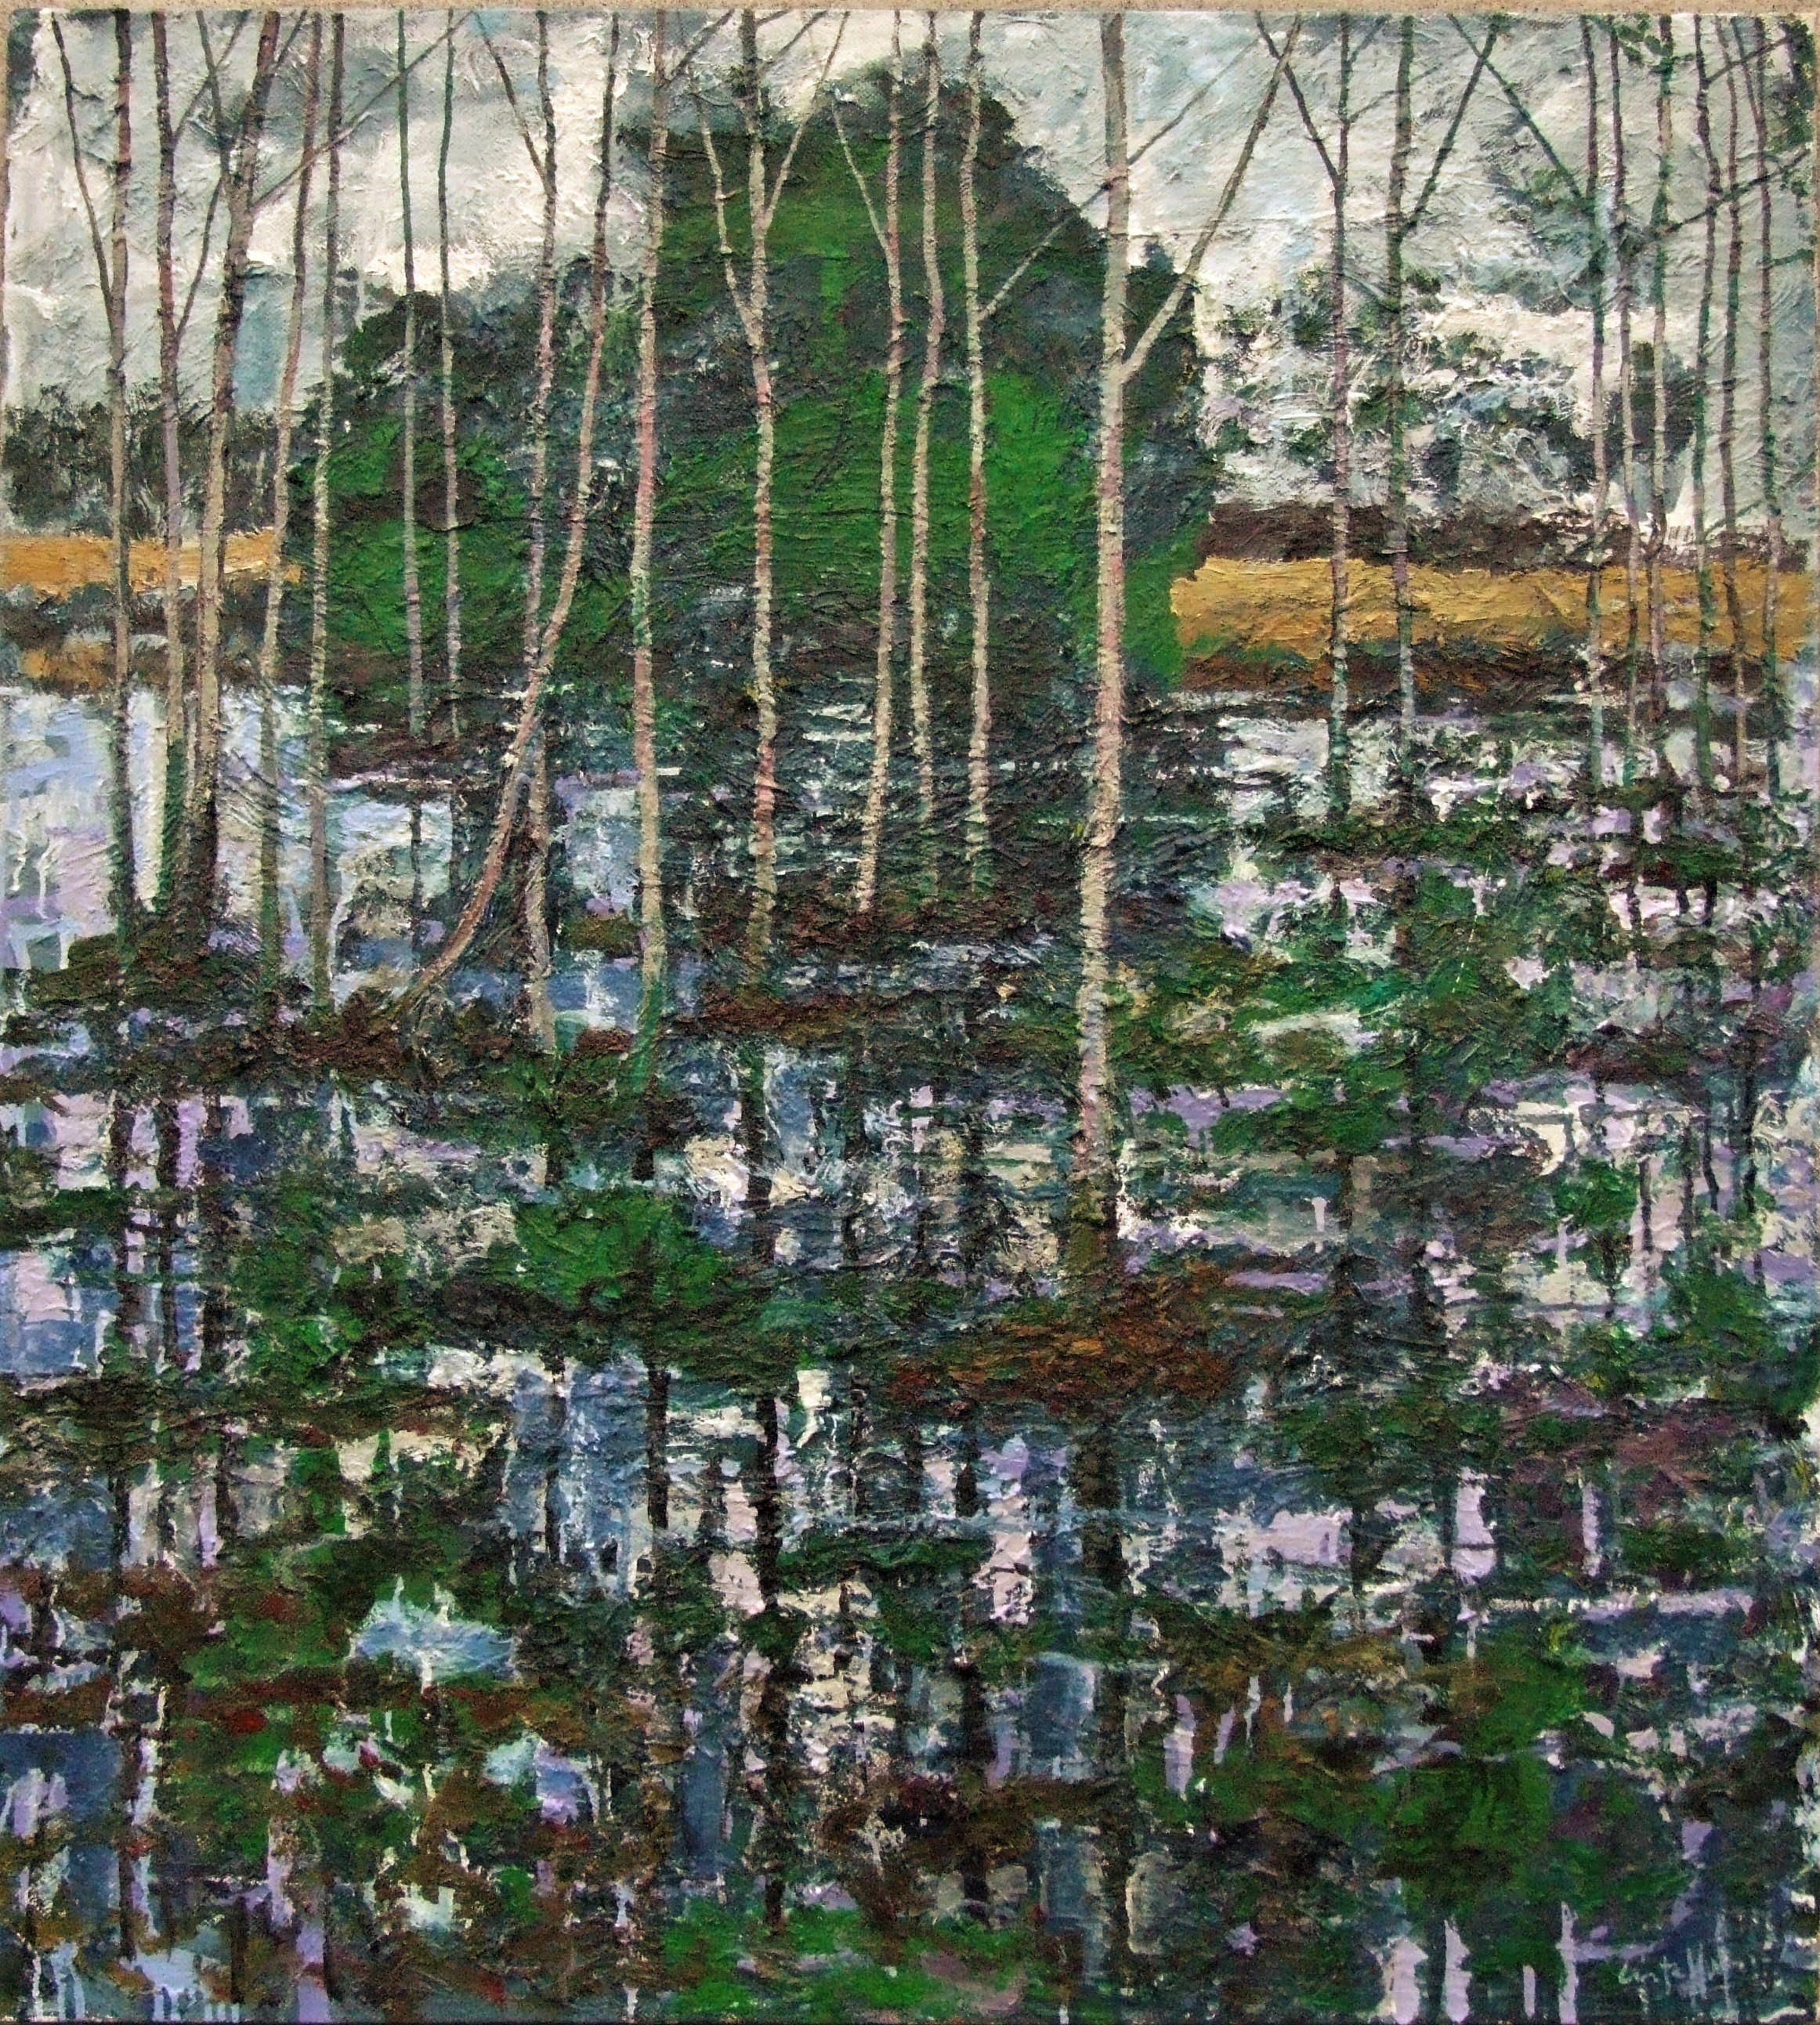 Near the River, Flooded fields and trees, 2016, oil on canvas, 110 x 100 cm